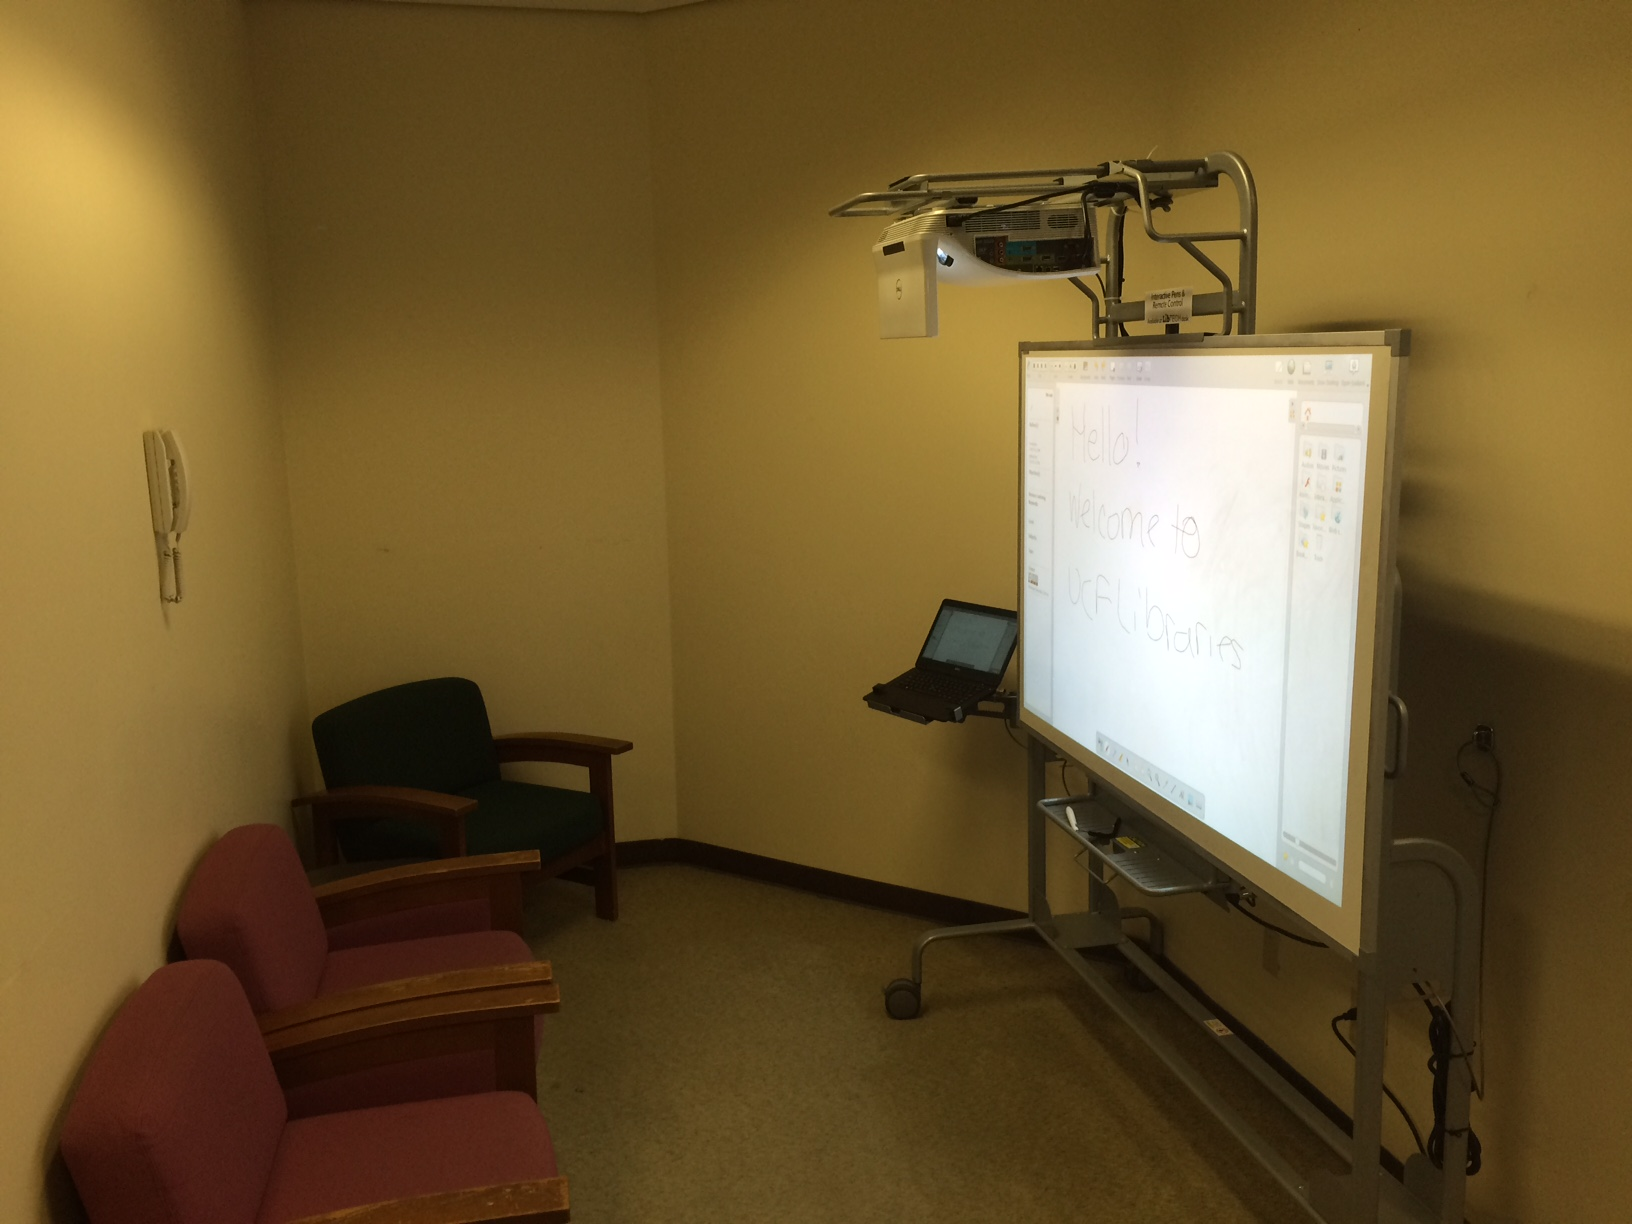 An interactive whiteboard is placed at the center of a study room